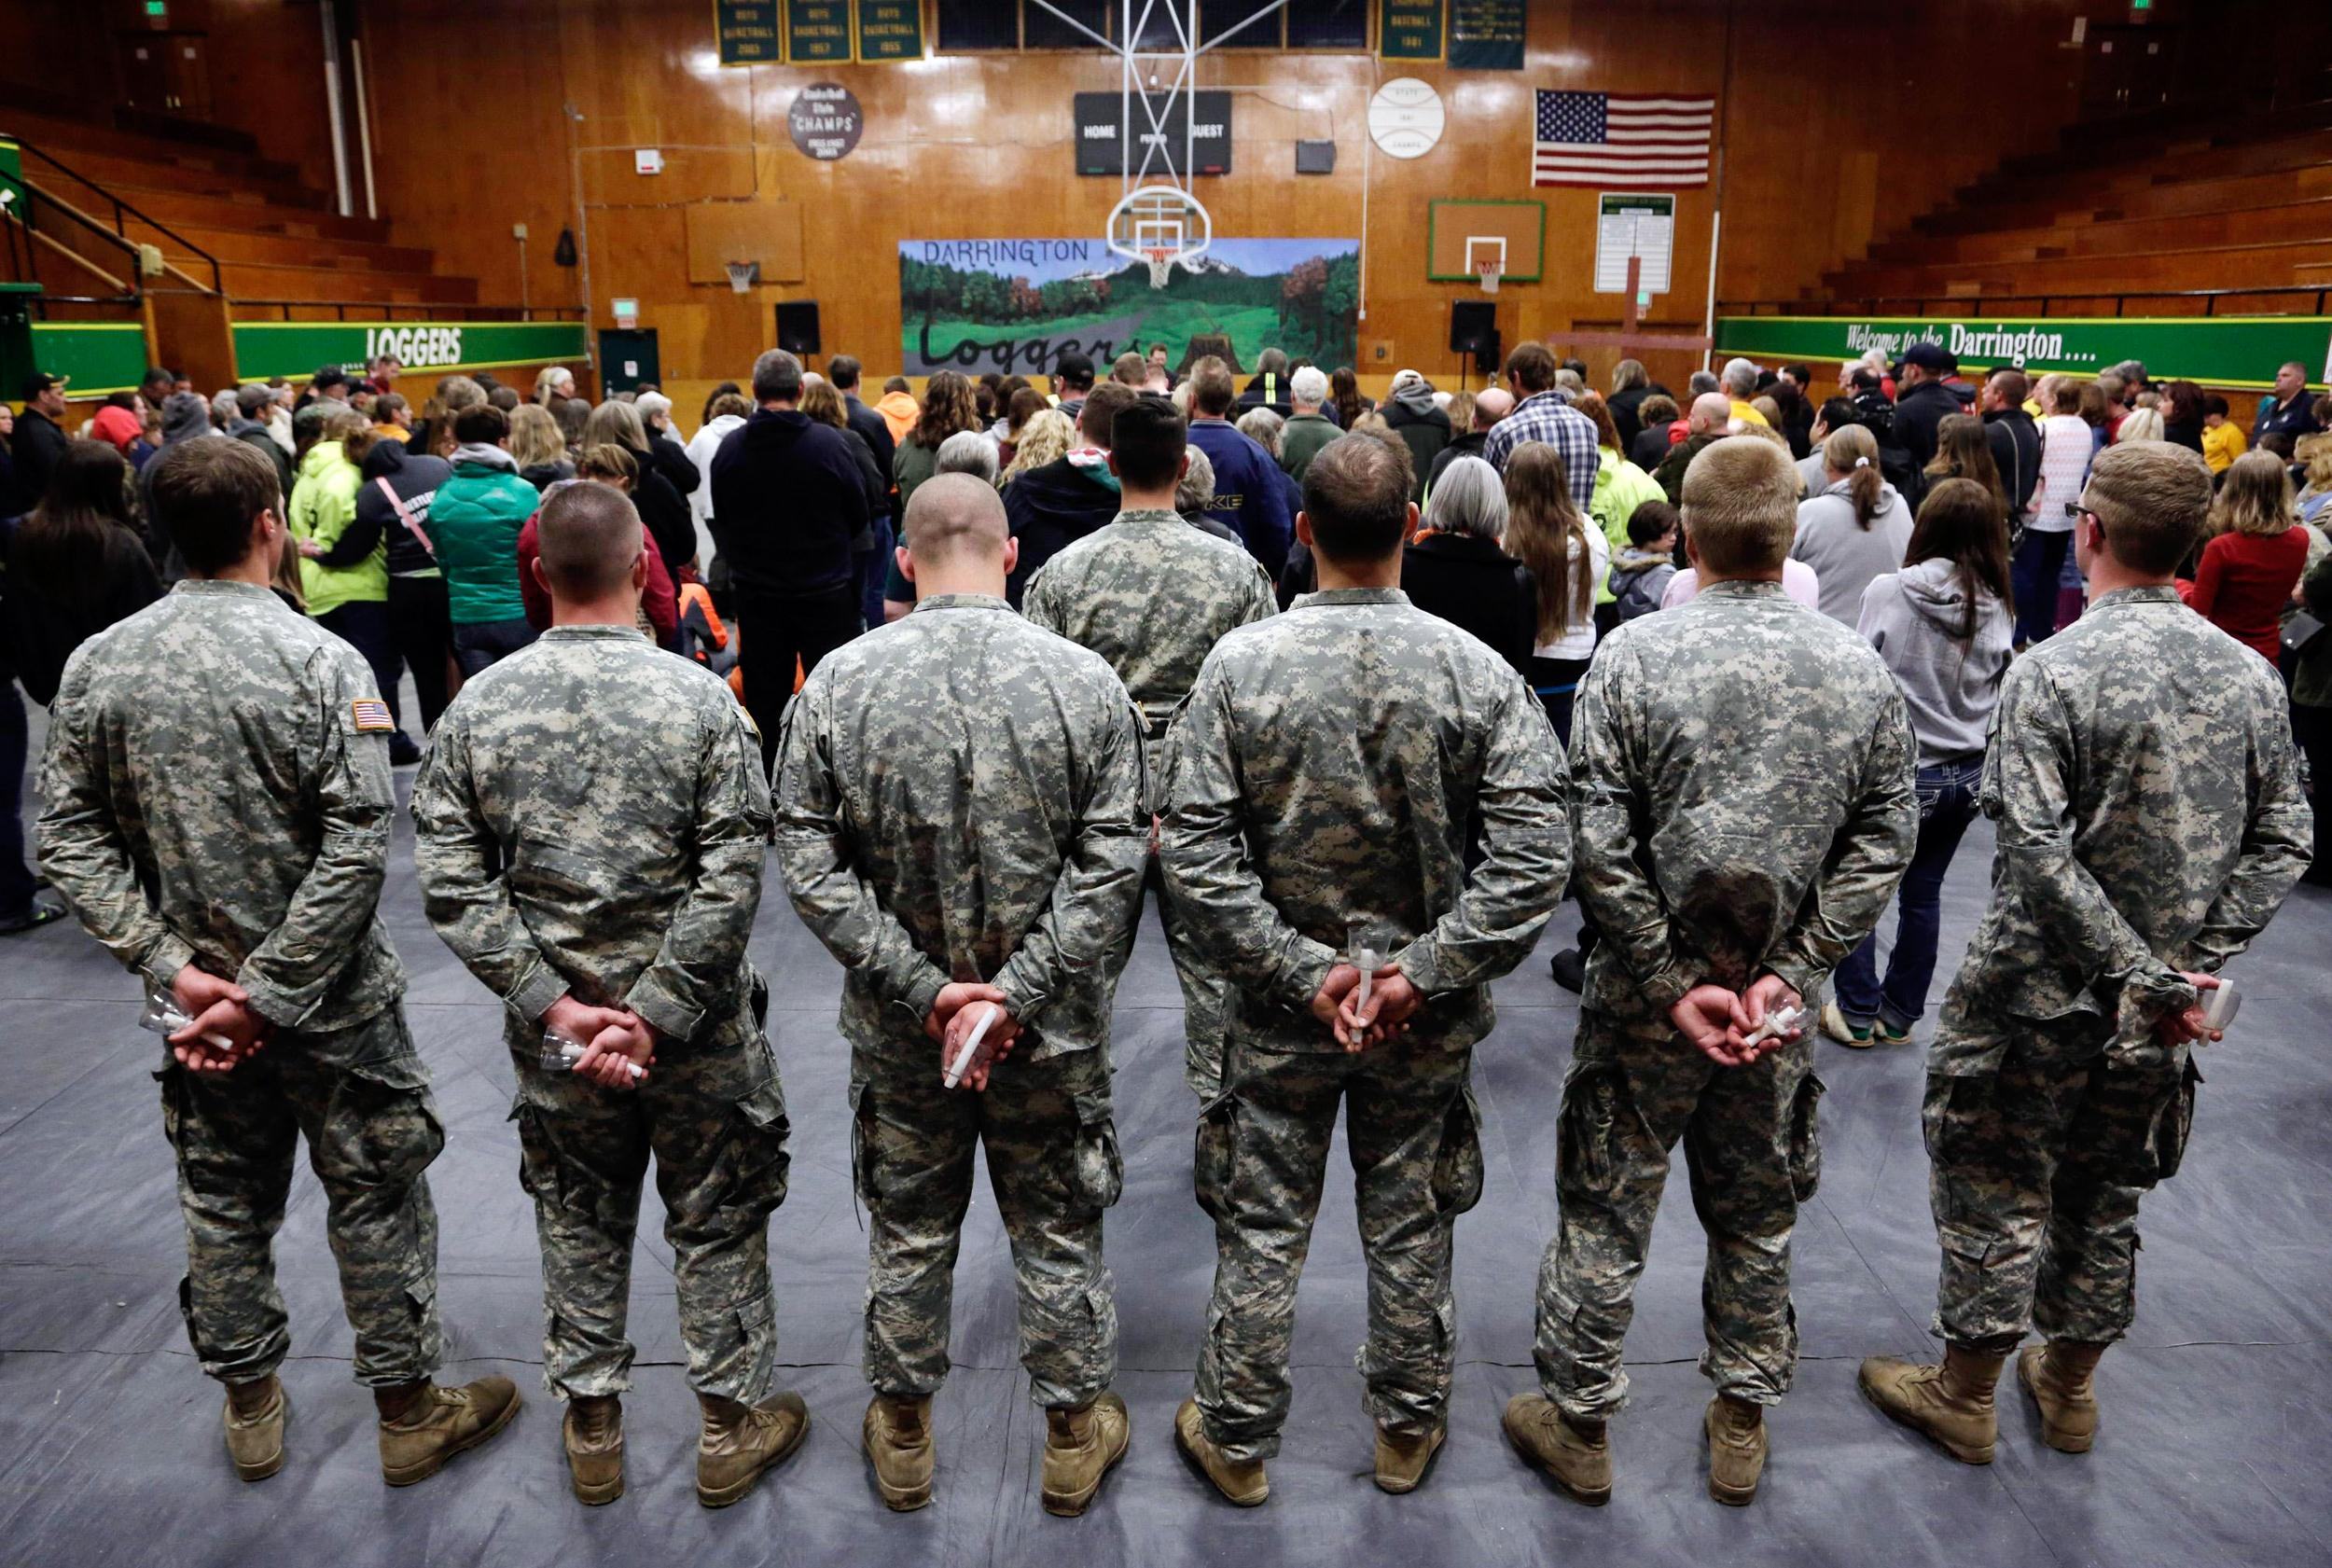 Image: Washington Army National Guard Members of 790th Chemical Company attend a candlelight vigil for communities affected by the Oso mudslide at the Community Center in Darrington, Washington